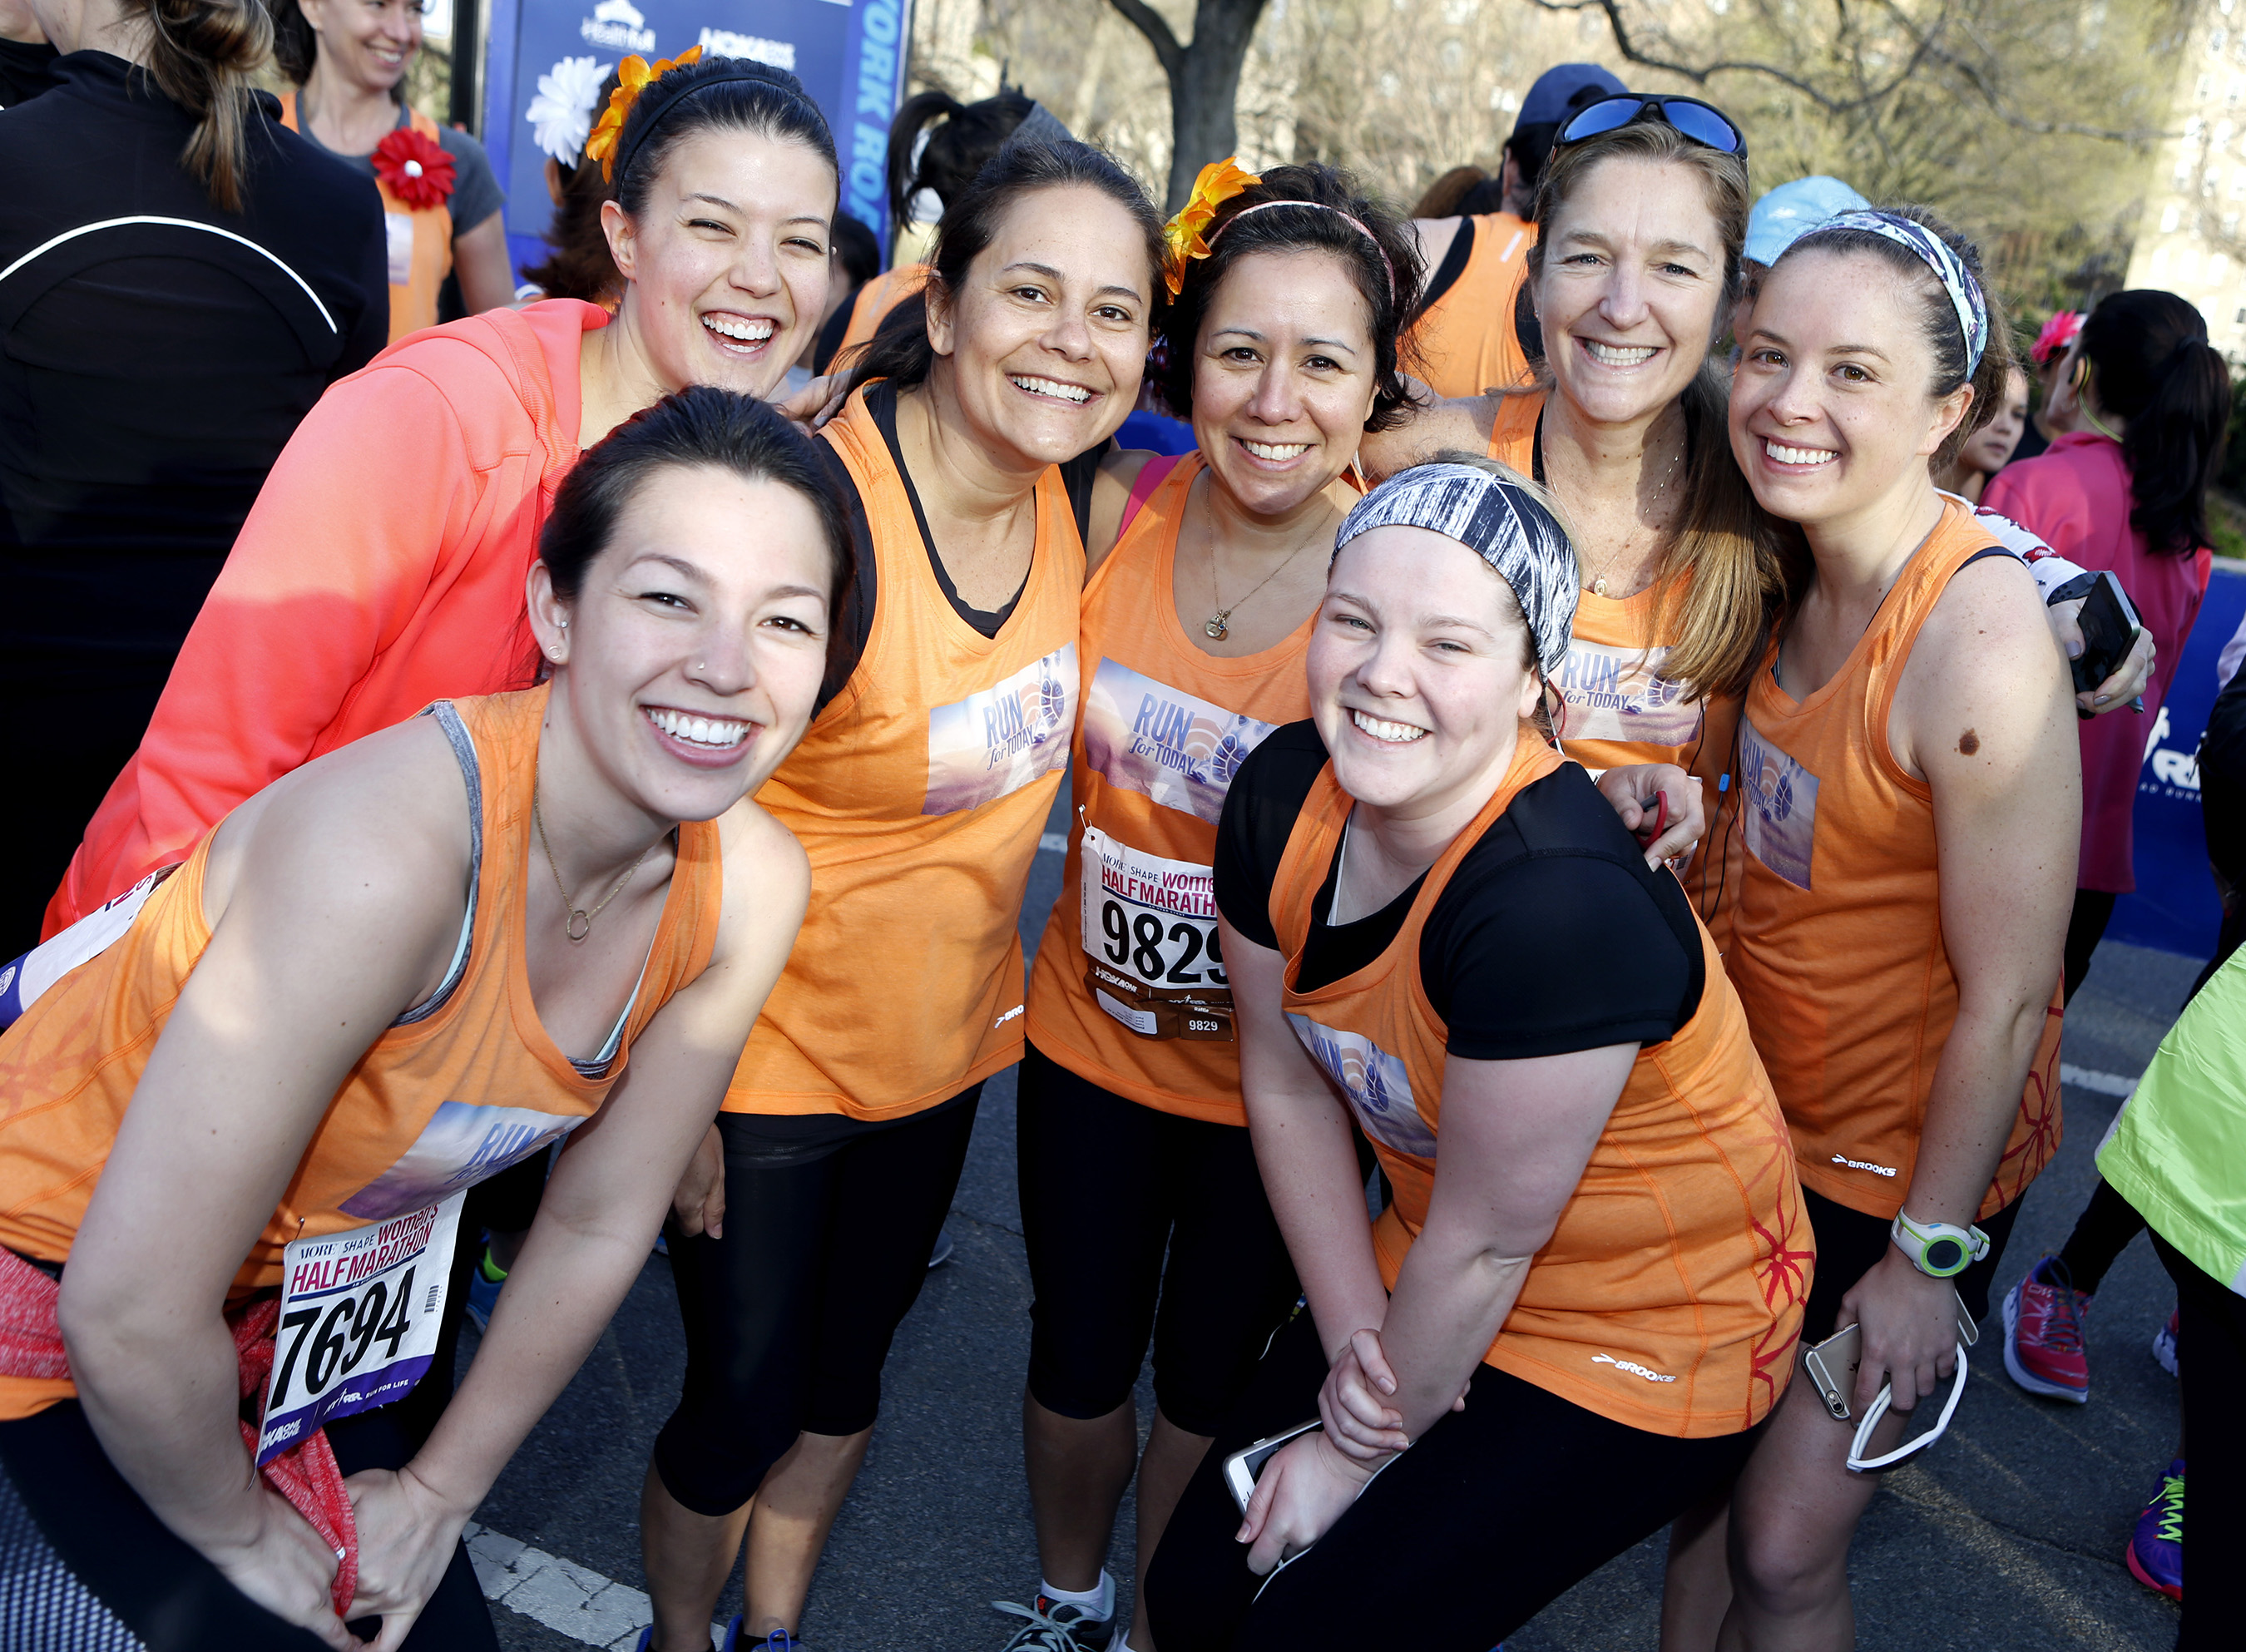 """""""Run for TODAY"""" team members get ready to run the 12th Annual MORE/SHAPE Women's Half-Marathon in New York's Central Park on April 19, 2015."""